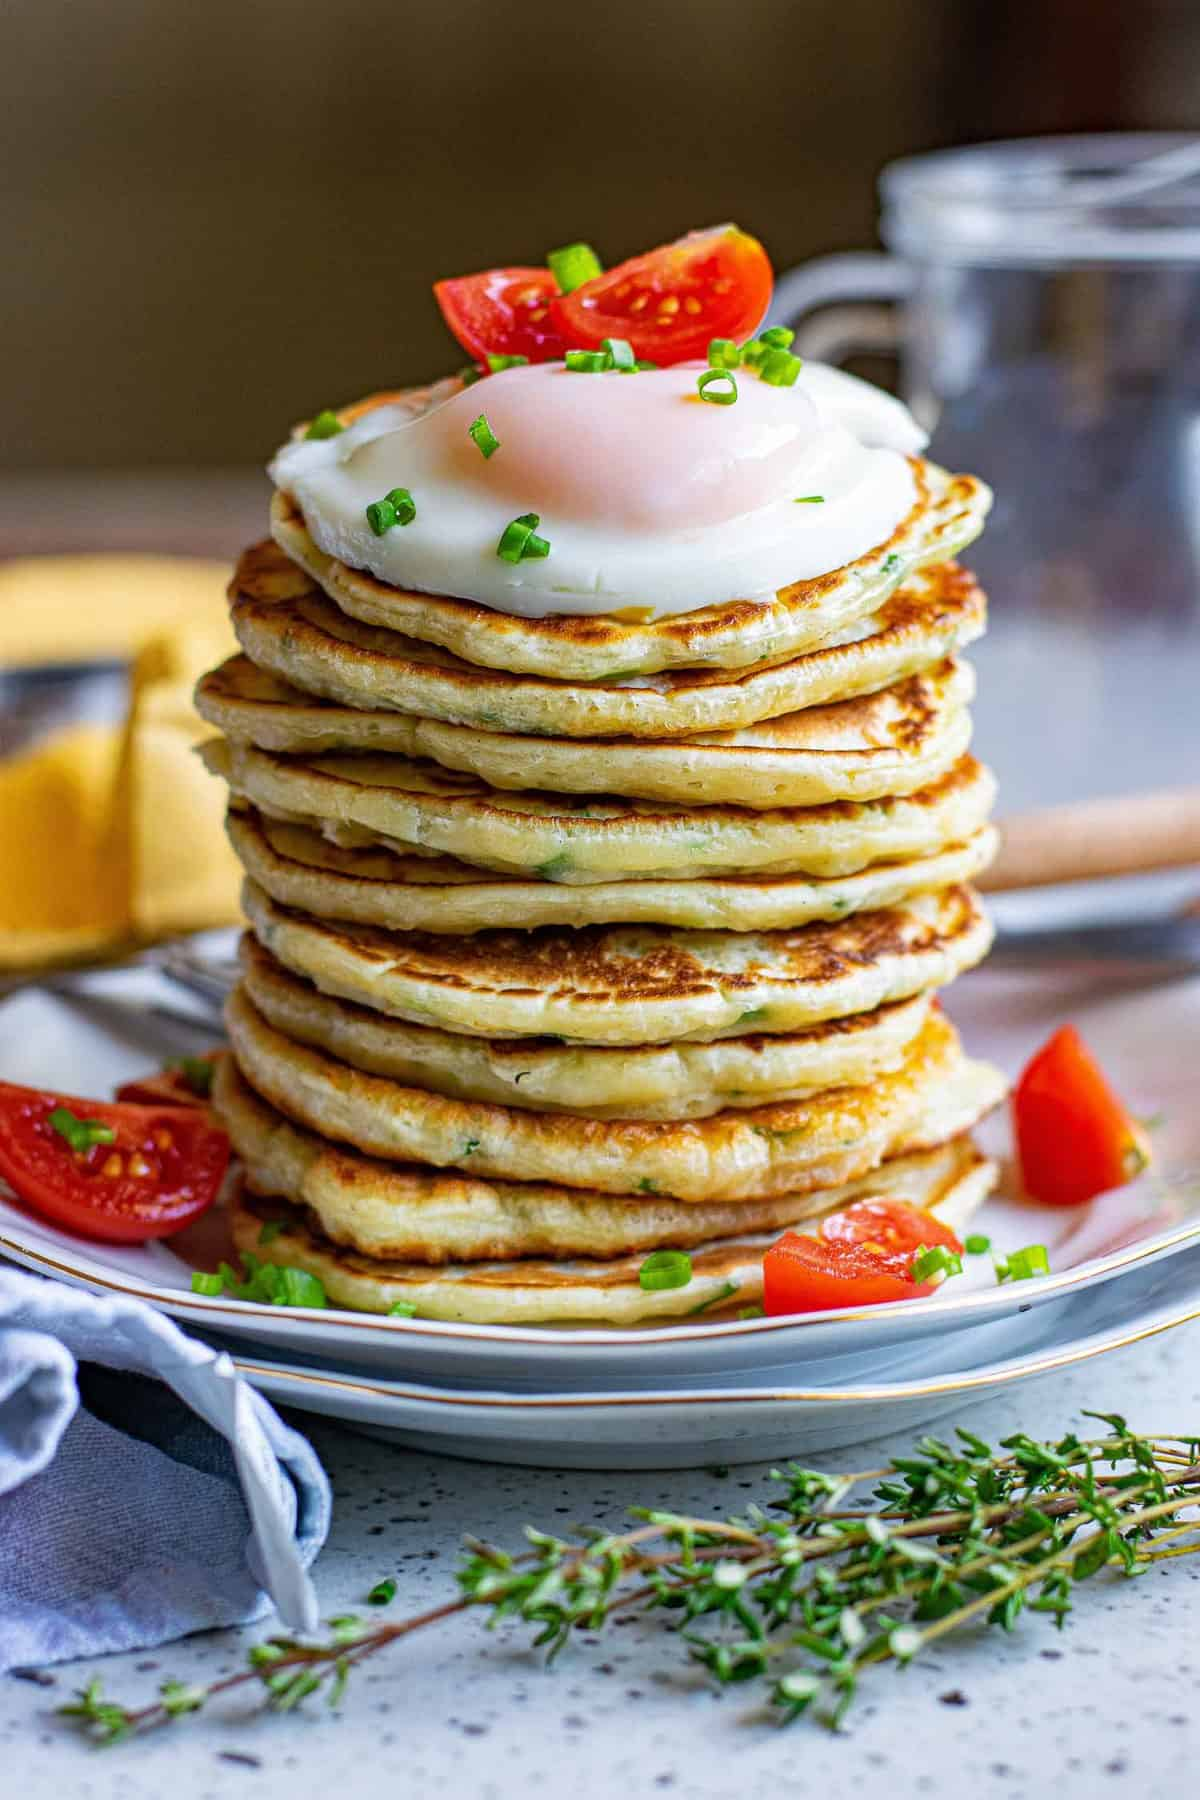 Tall stack of pancakes topped with a fried egg and cherry tomatoes.